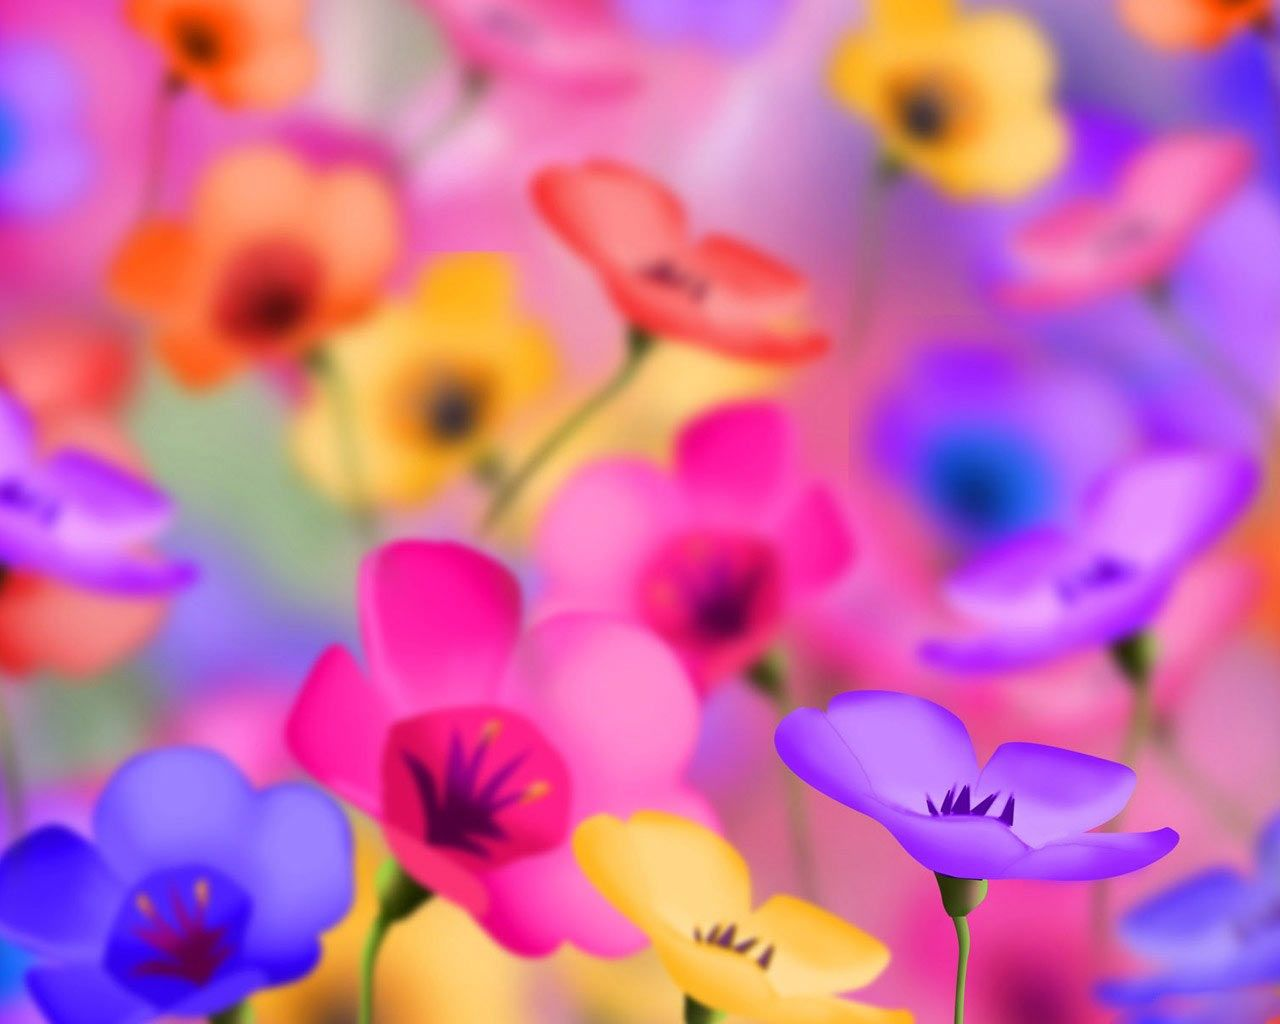 Flowers For Flower Lovers Flowers Background Desktop Wallpapers Colorful Flowers Amazing Flowers Flower Pictures